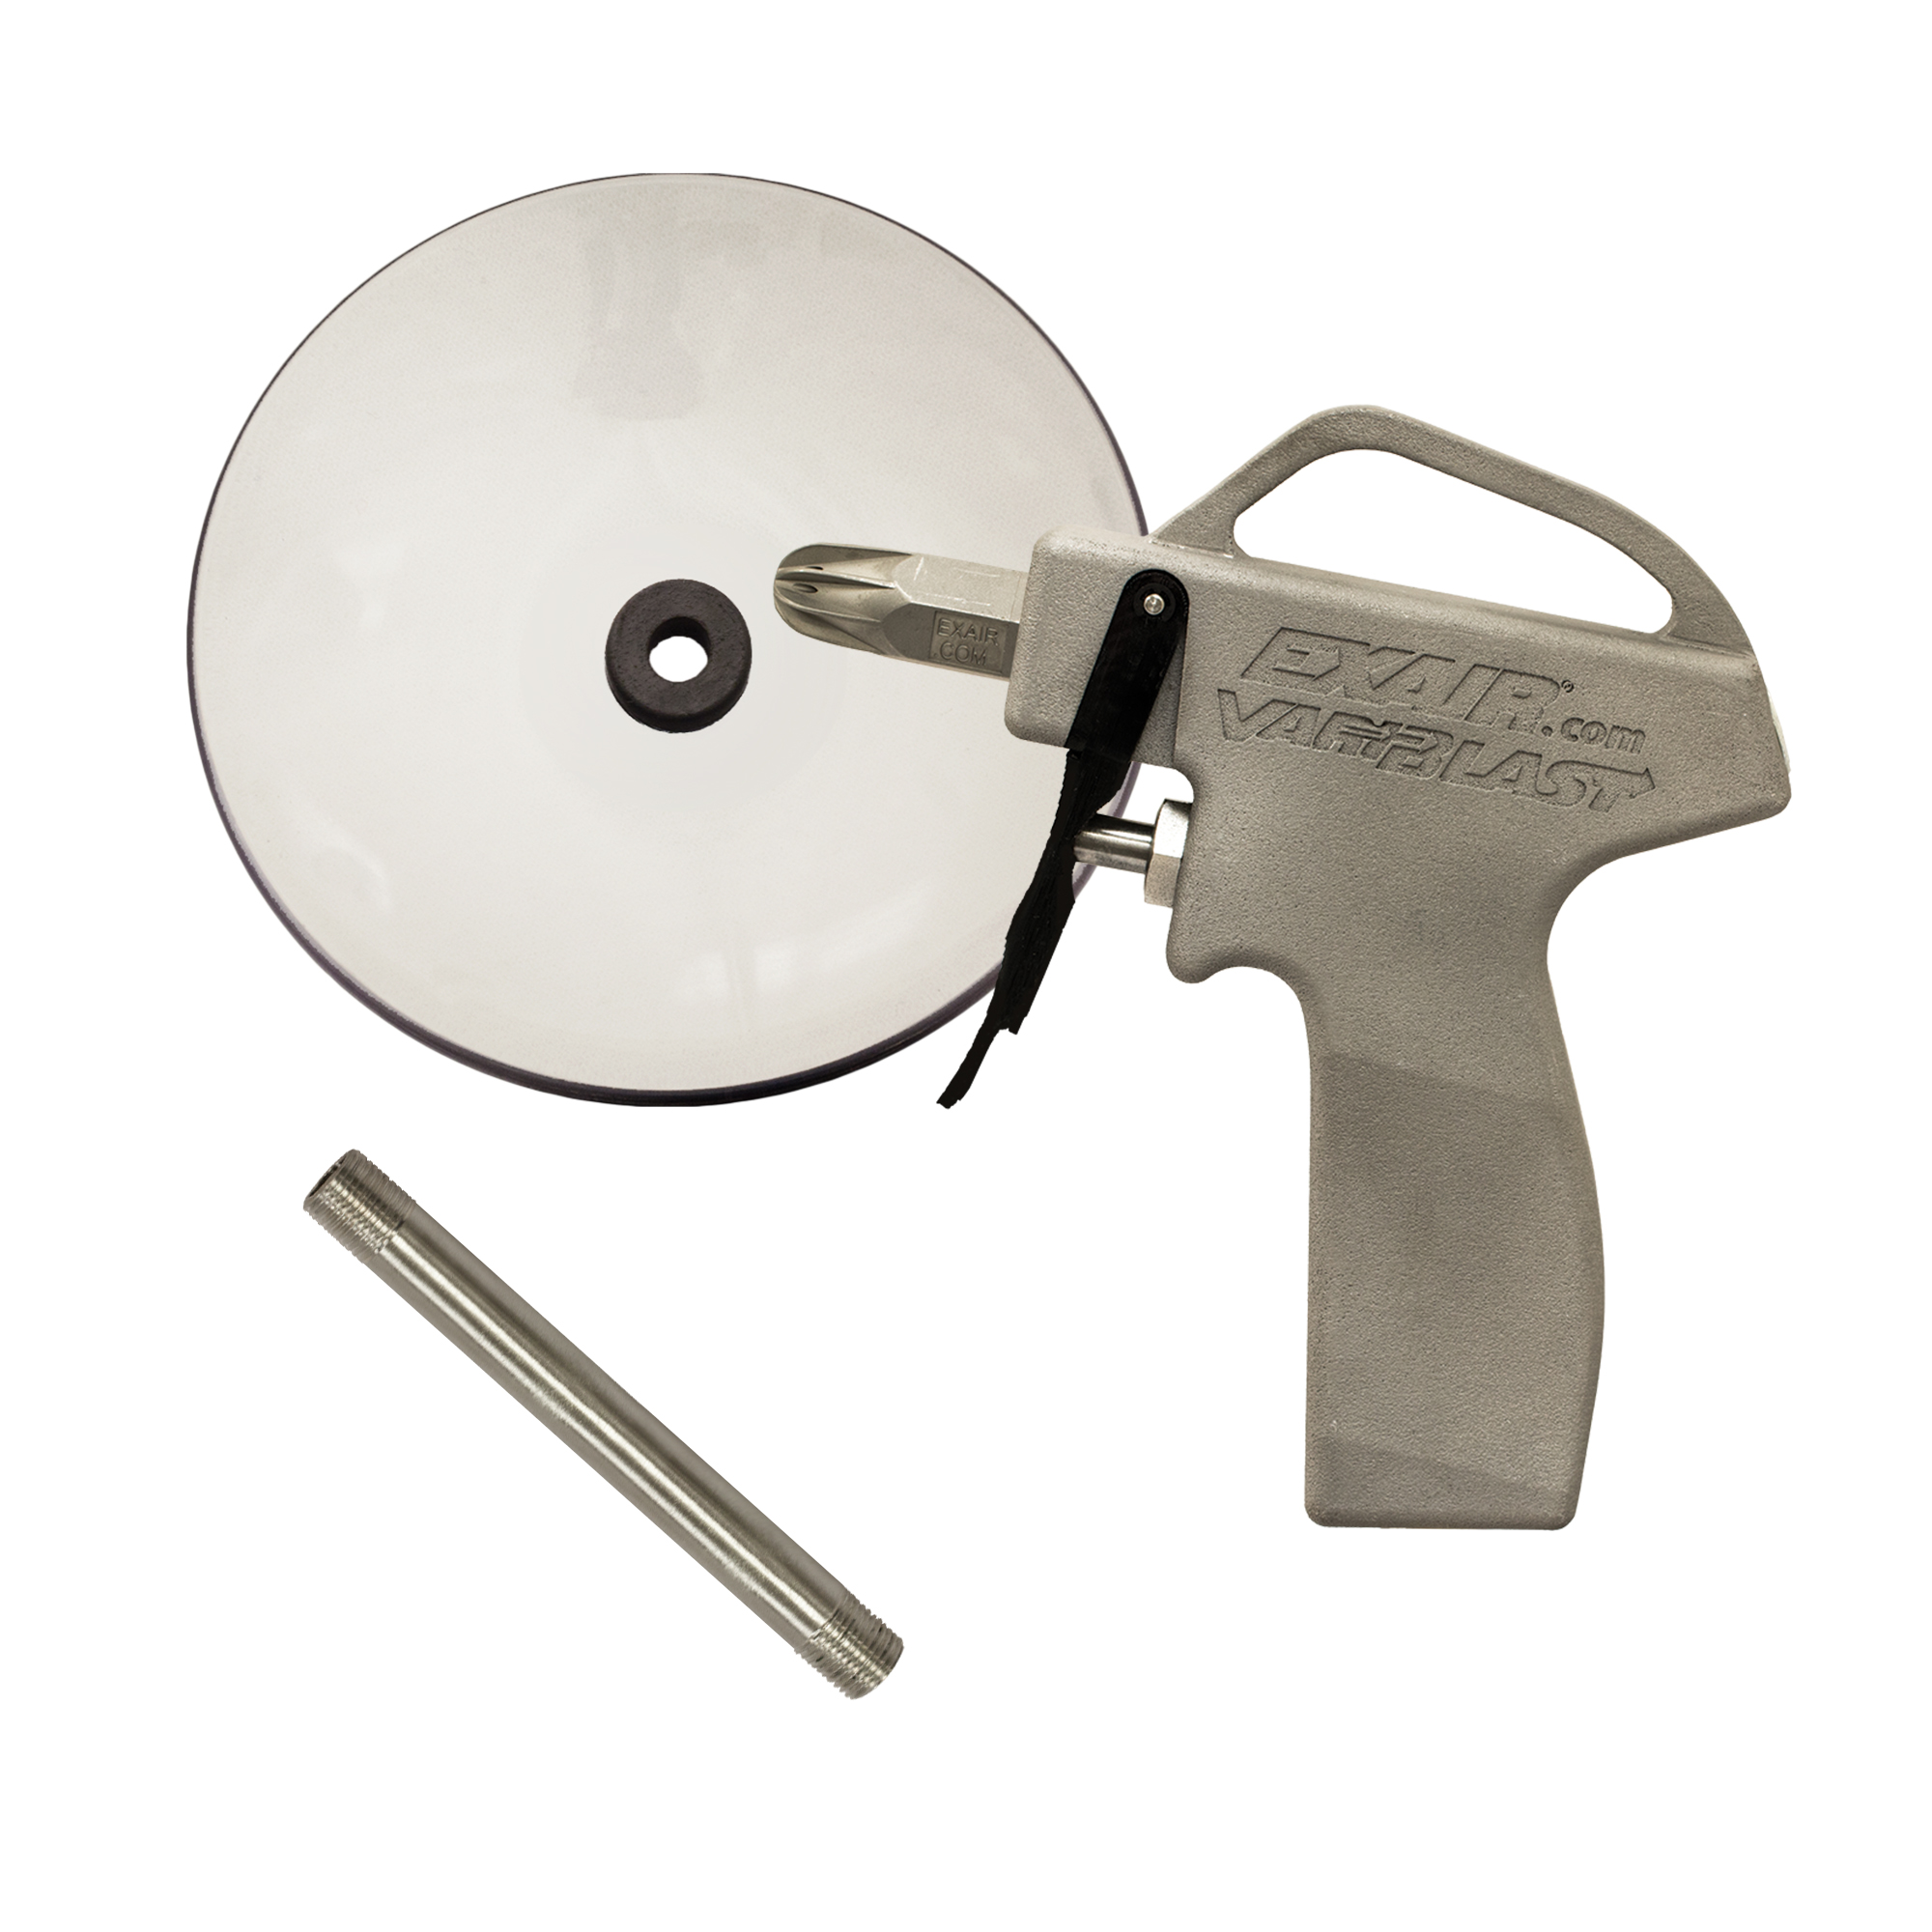 """Model 1699-36-CS VariBlast Compact Safety Air Gun with Model 1103 Air Nozzle, 36"""" Alum. Ext Pipe & Chip Shield"""